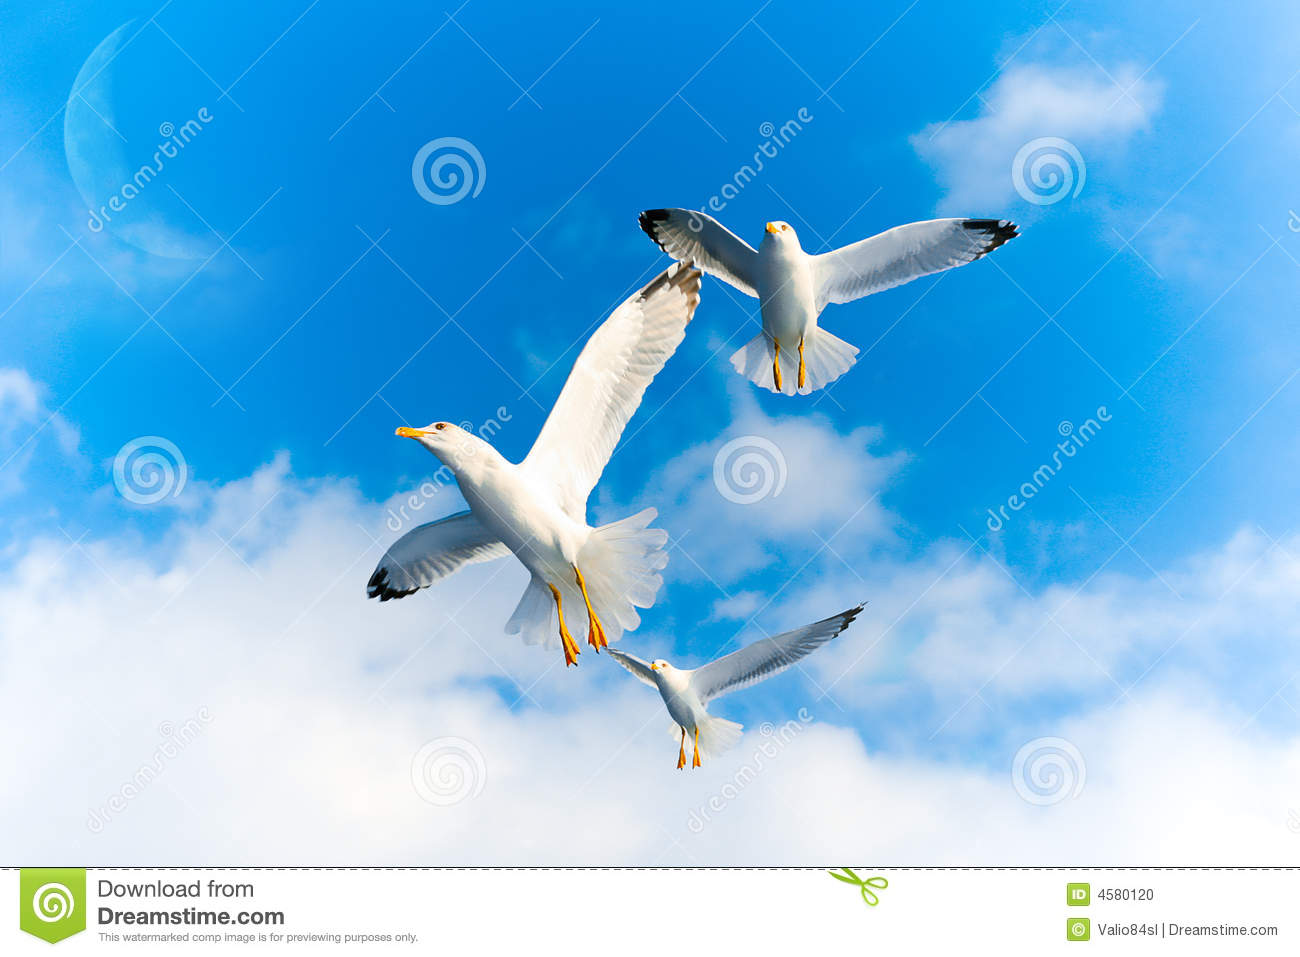 Flying Birds Free Stock Photos Download 3 416 Free Stock: Flying Birds Stock Photo. Image Of Heaven, Fantasy